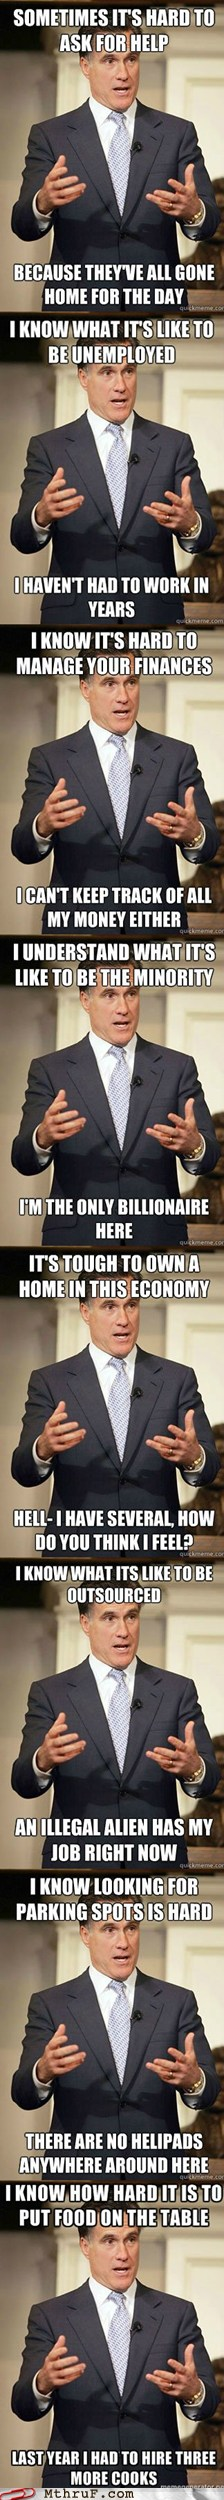 juugbVm 4Eimx Wfdj ffQ2 Monday Thru Friday: Oh Mitt, You Know Us All Too Well Funny Picture